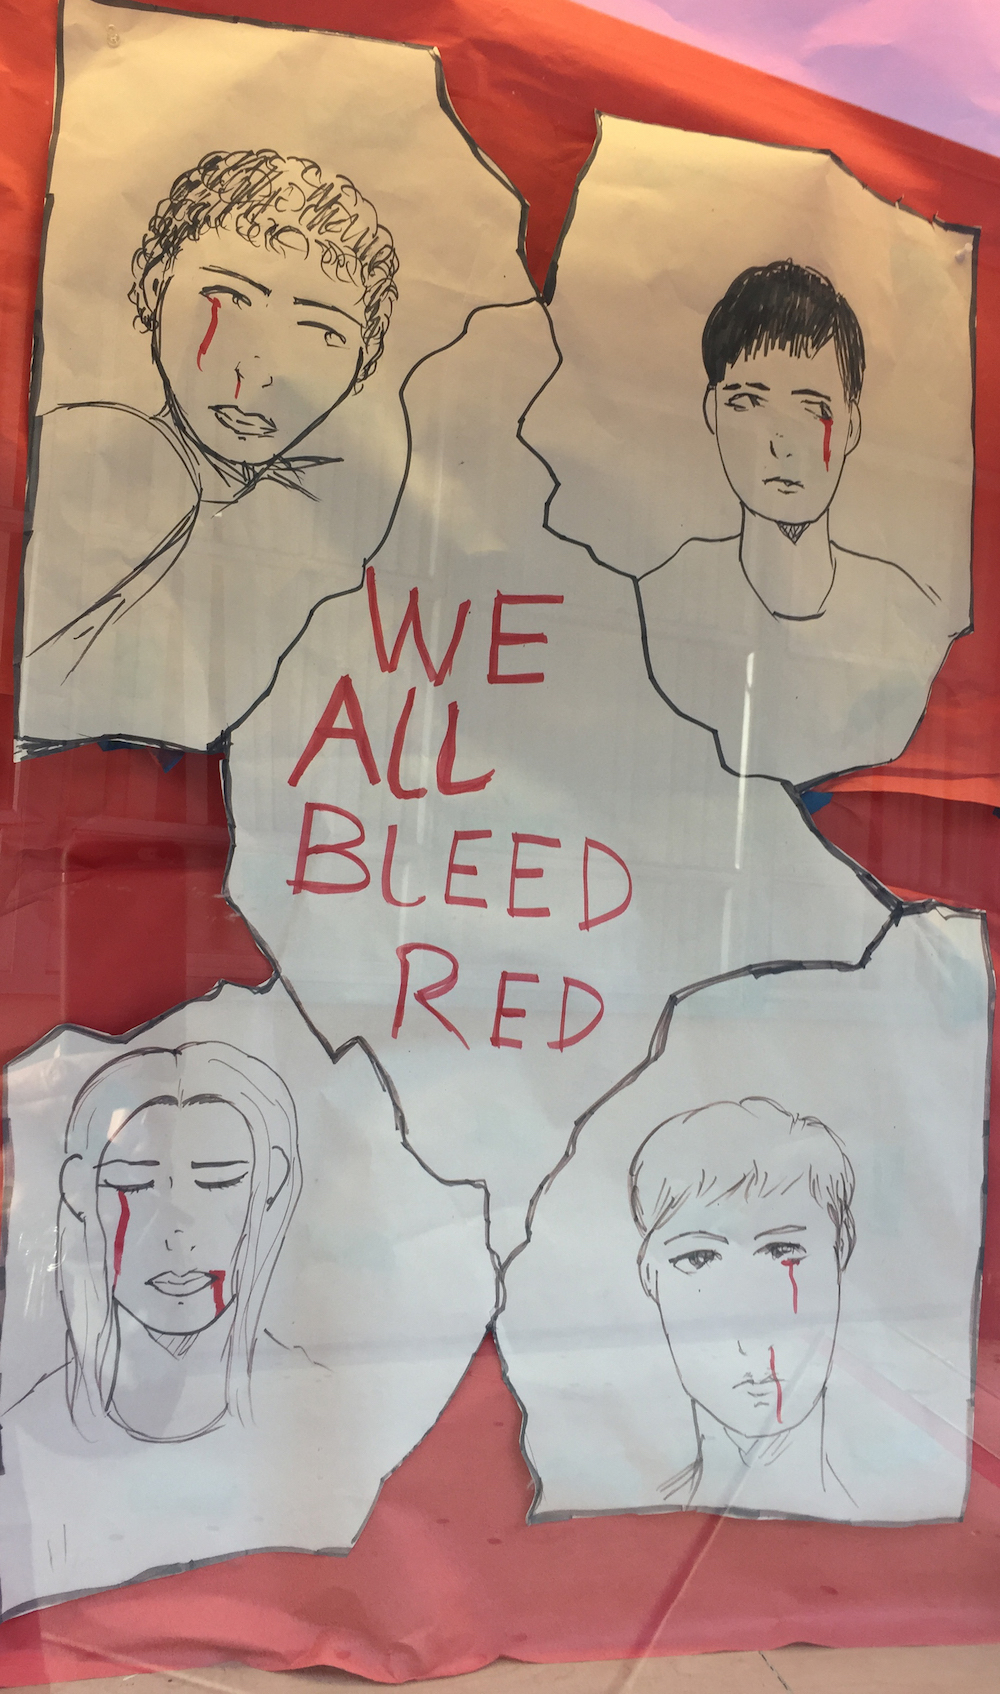 Arroyo High School 2017 Town Hall: We All Bleed Red